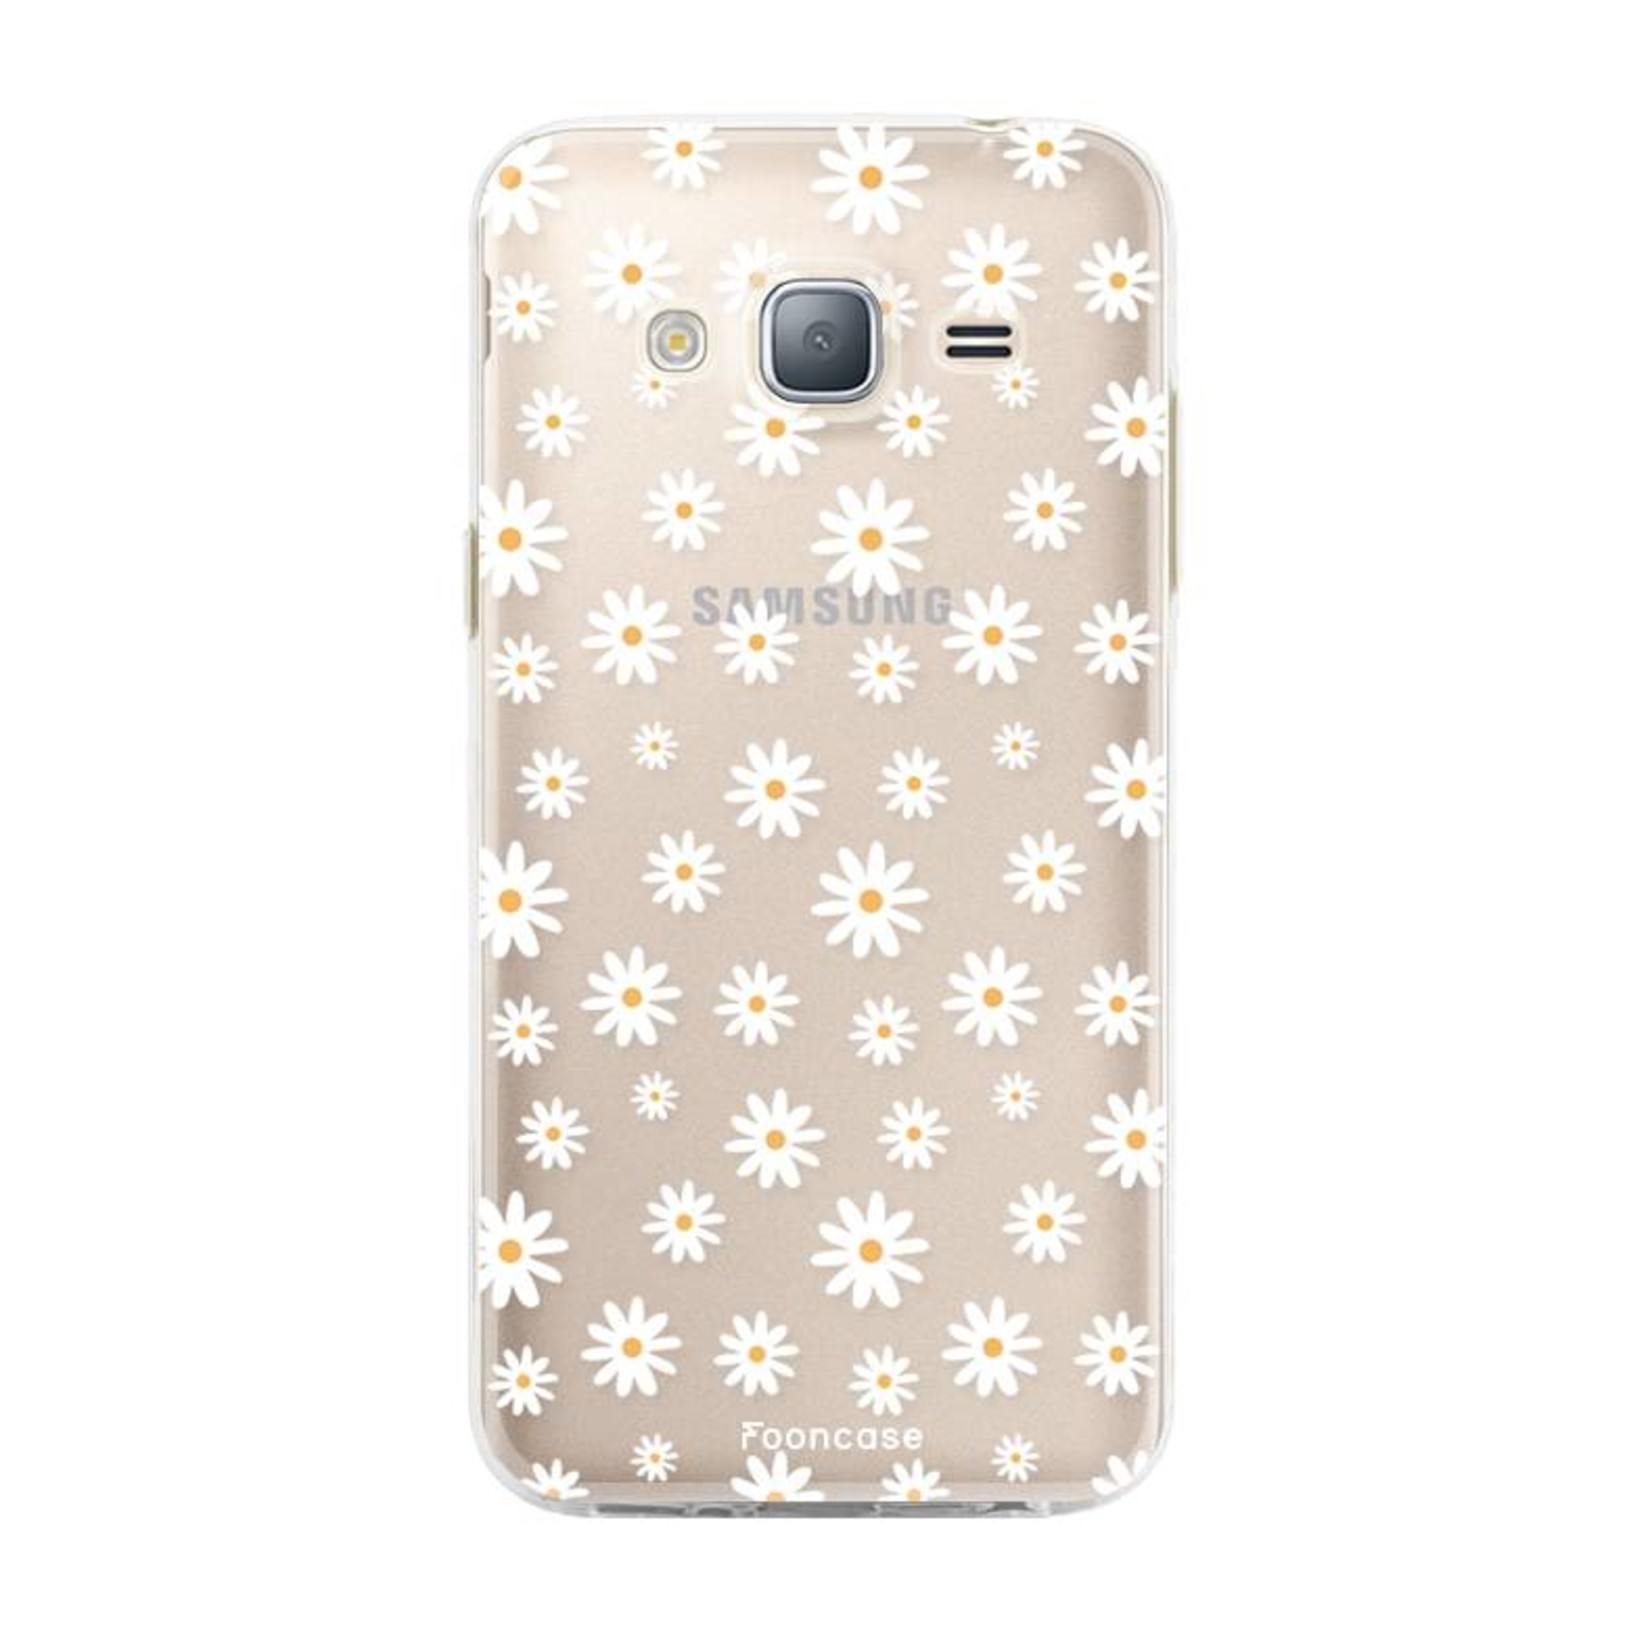 FOONCASE Samsung Galaxy J3 2016 hoesje TPU Soft Case - Back Cover - Madeliefjes